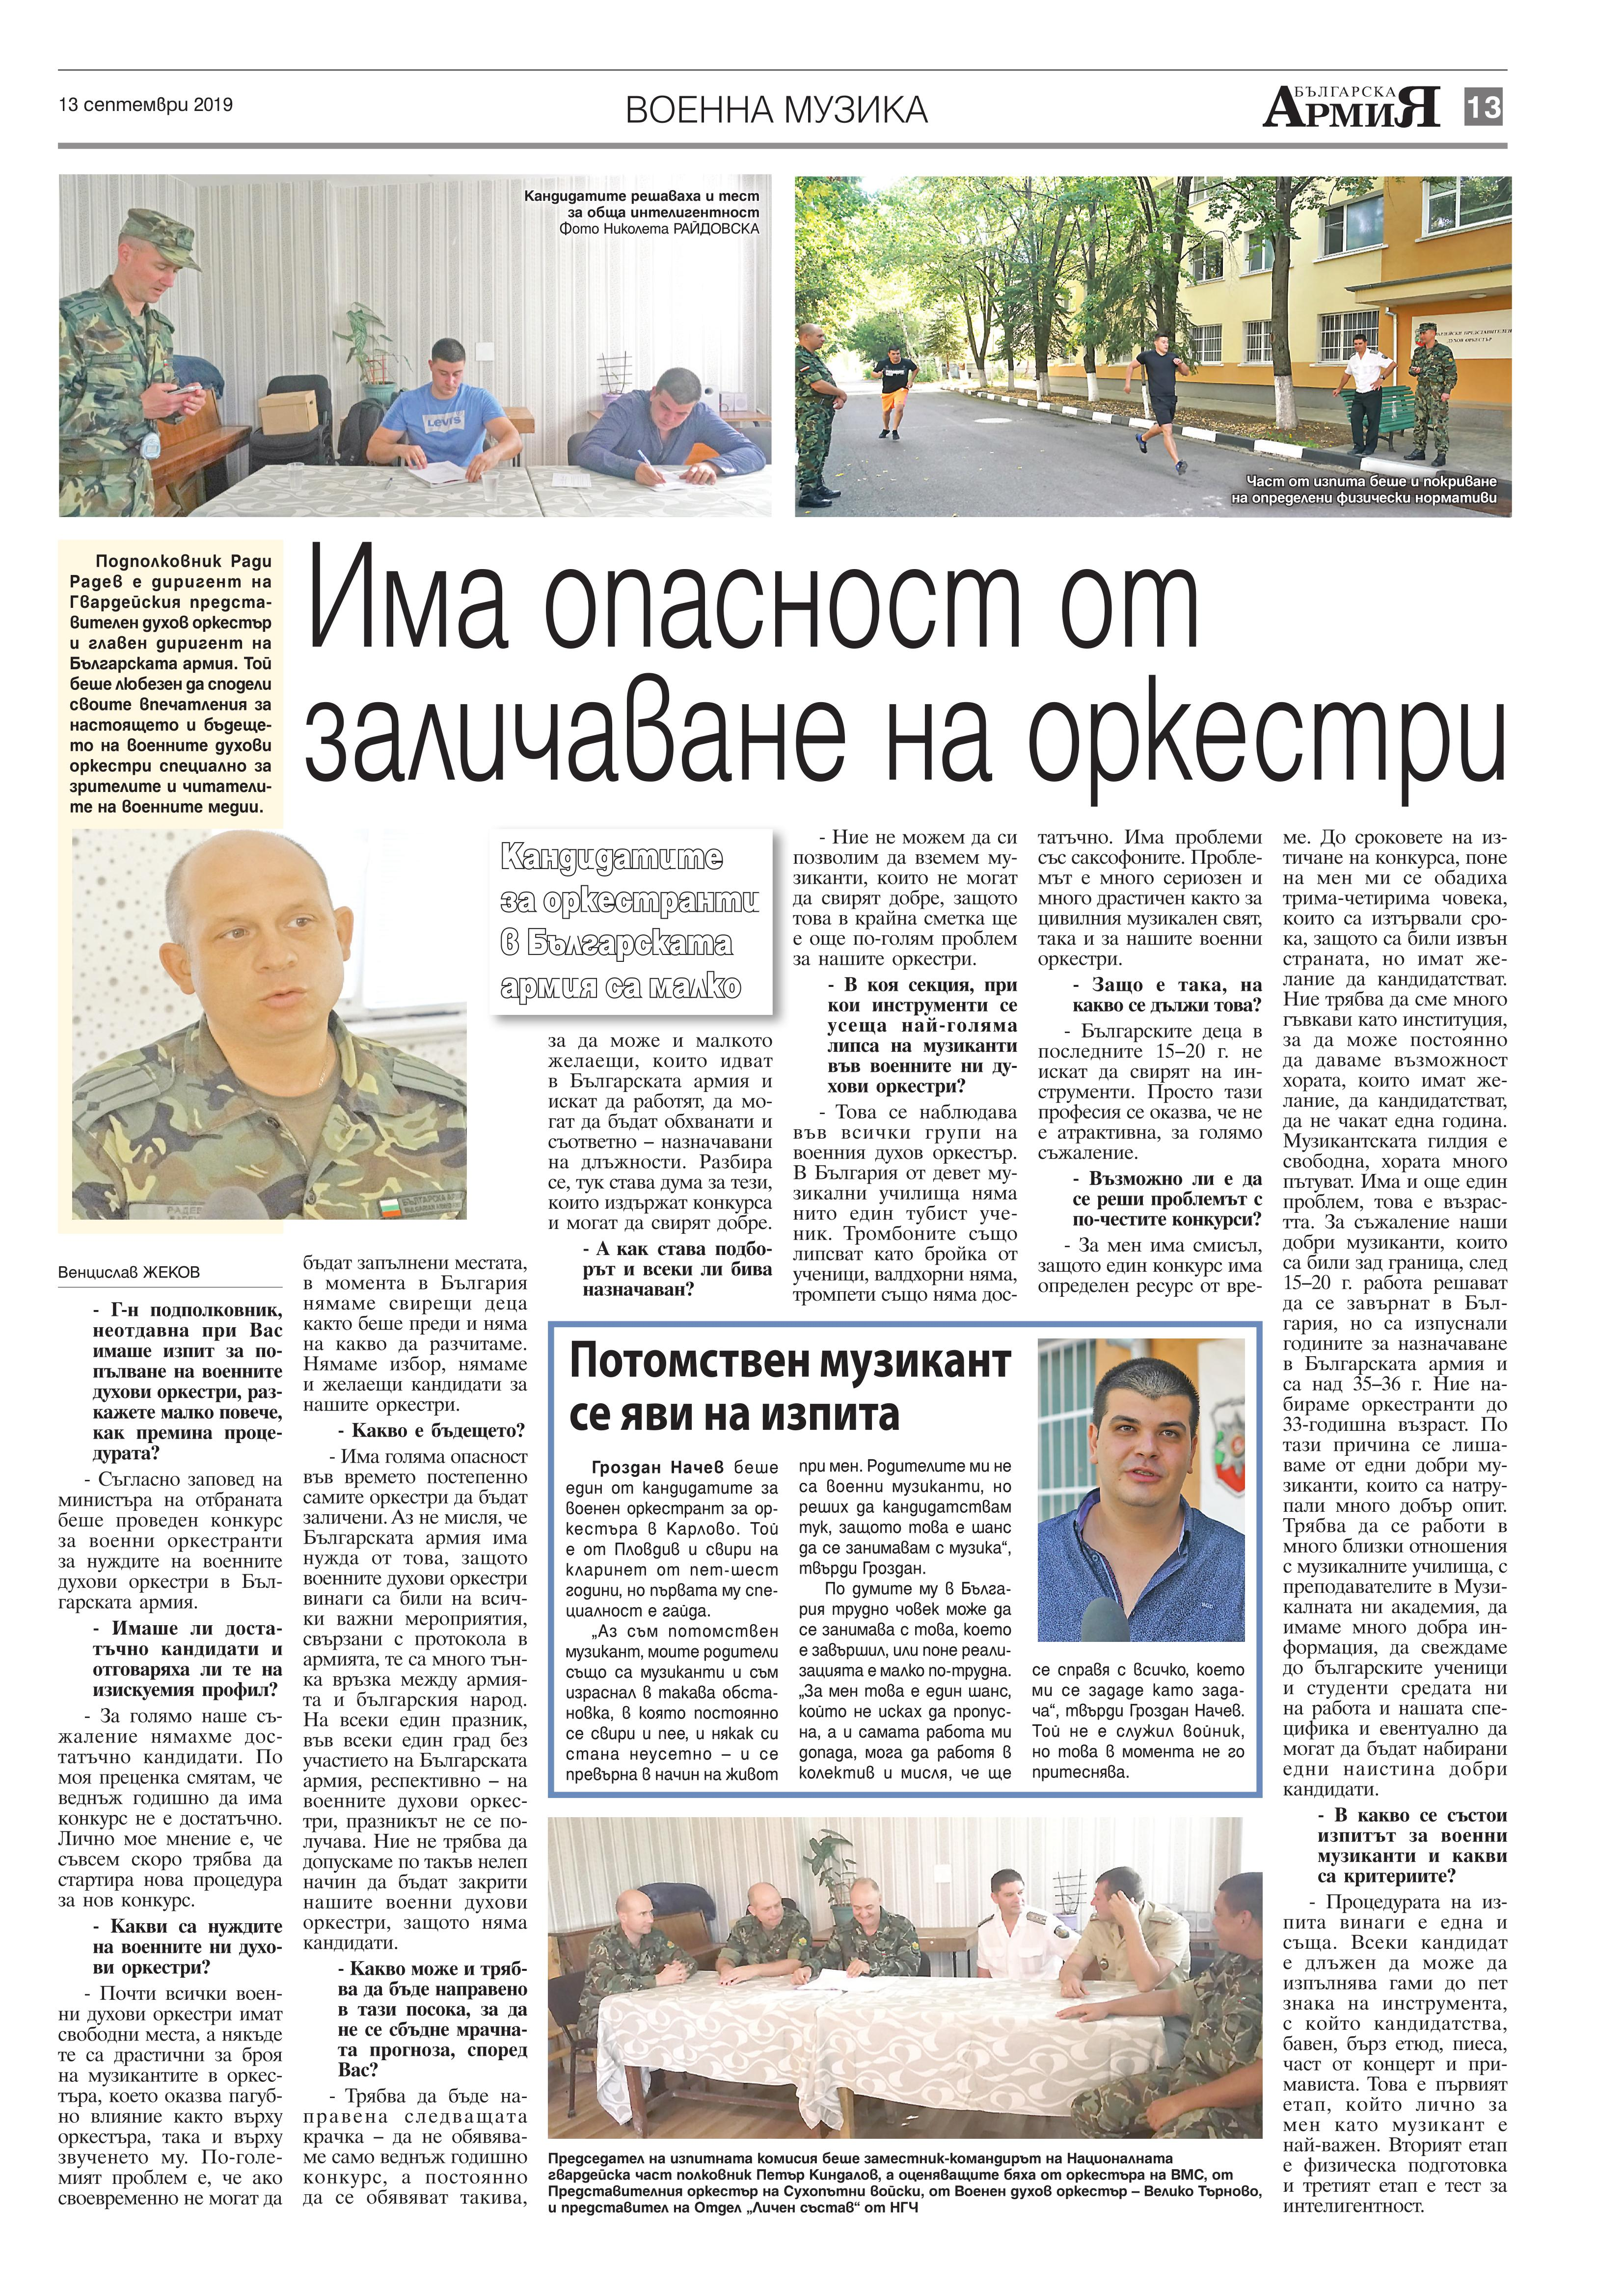 https://www.armymedia.bg/wp-content/uploads/2015/06/13.page1_-109.jpg